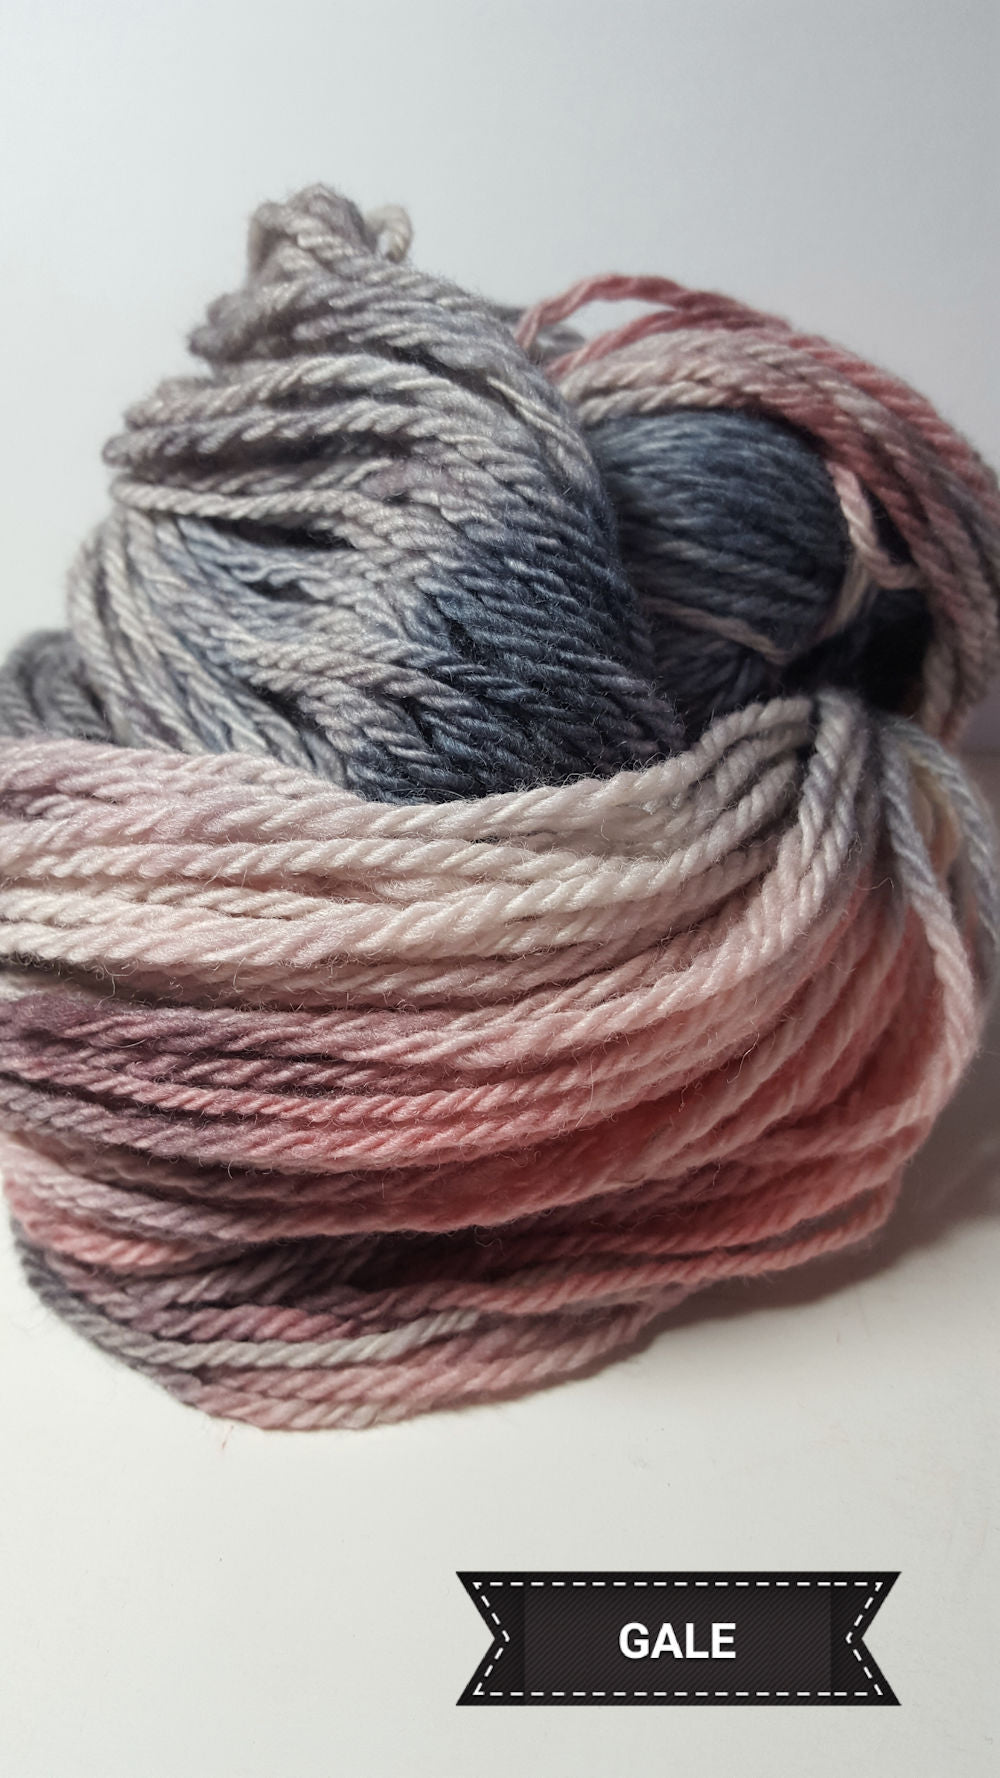 Gale - Hand Dyed Aran/Worsted Yarn for Rug Hooking